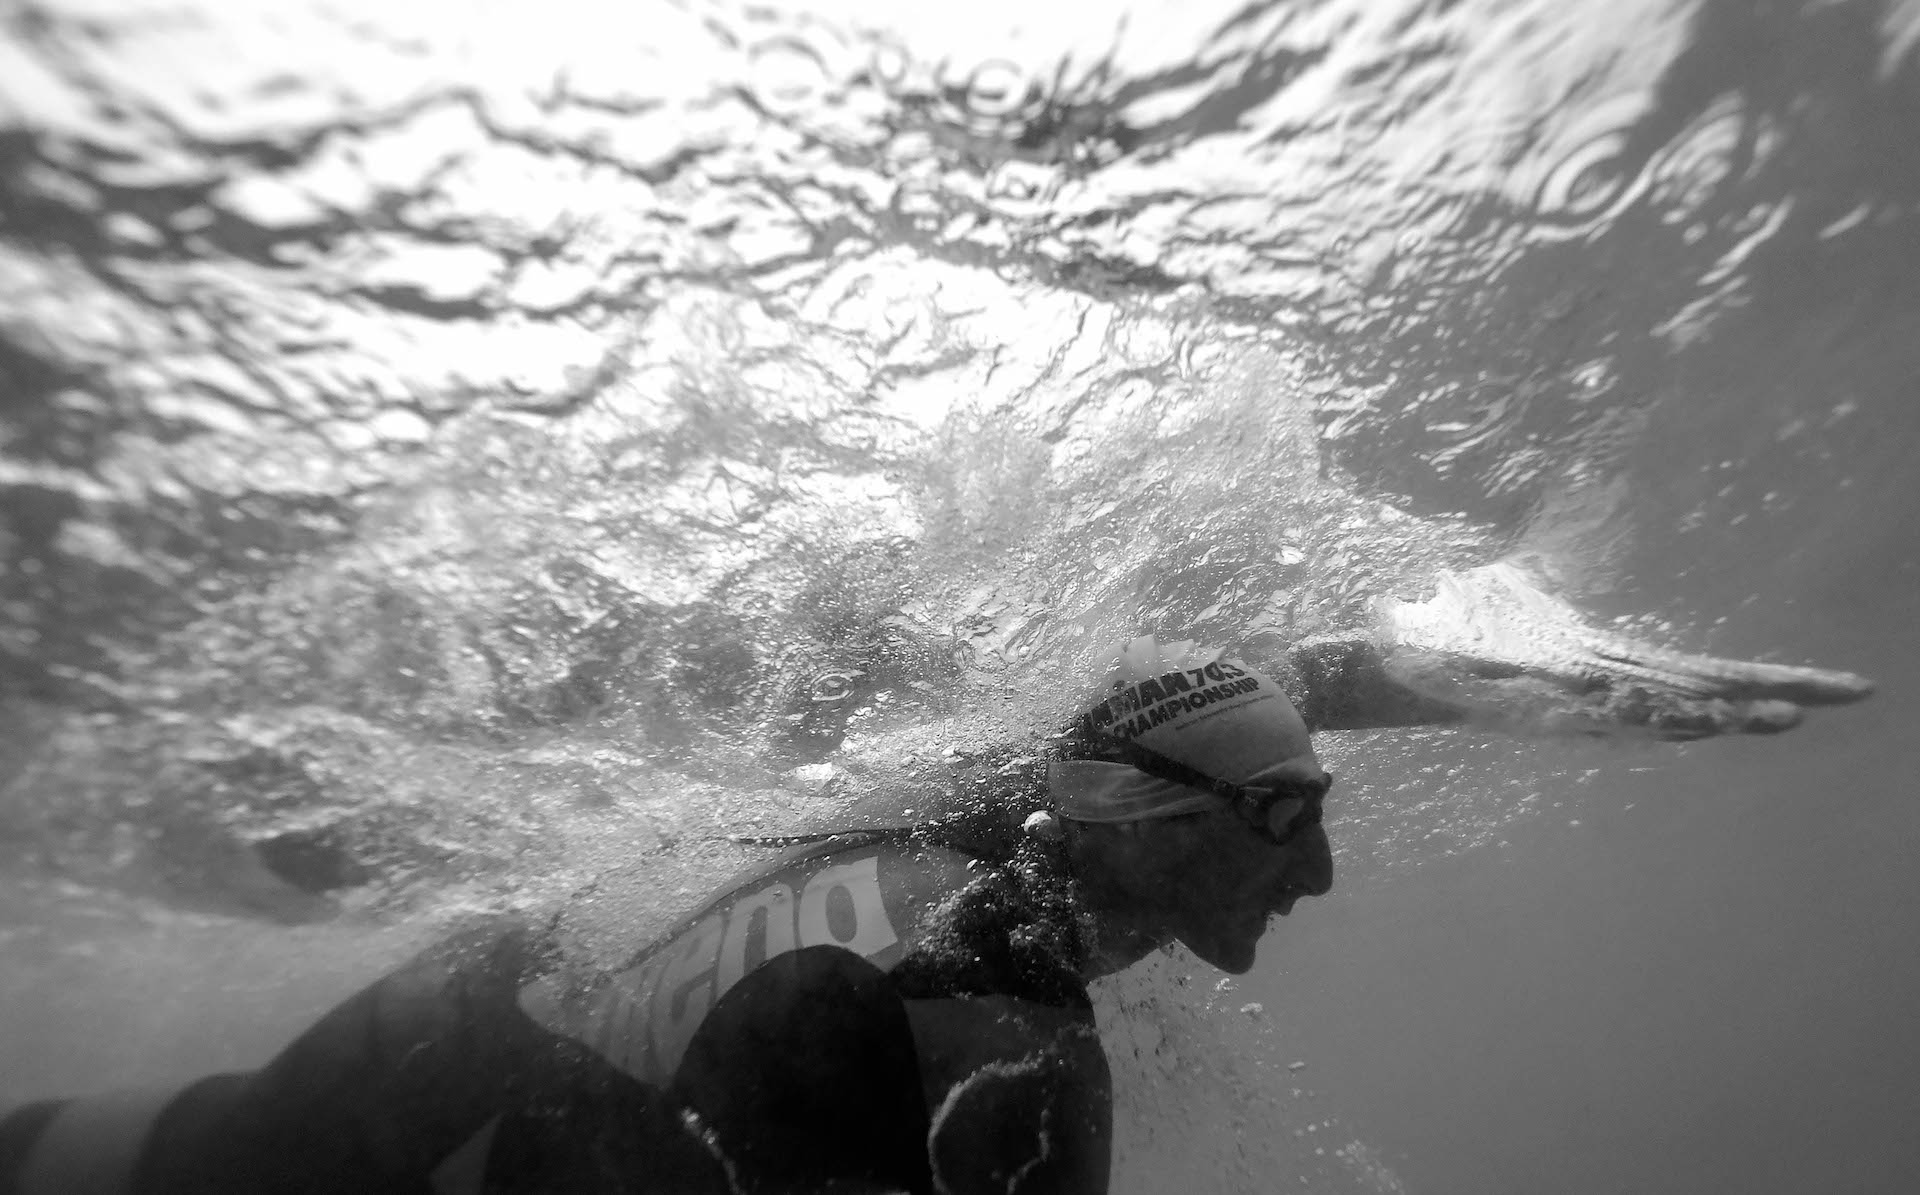 THROUGH THE LOOKING GLASS: The men's division got their chance to shine during the 2018 IRONMAN 70.3 World Championship. The elite professional men led the age-group males into the water on Sunday, Sept. 2 (Photo by Donald Miralle/Getty Images for IRONMAN)